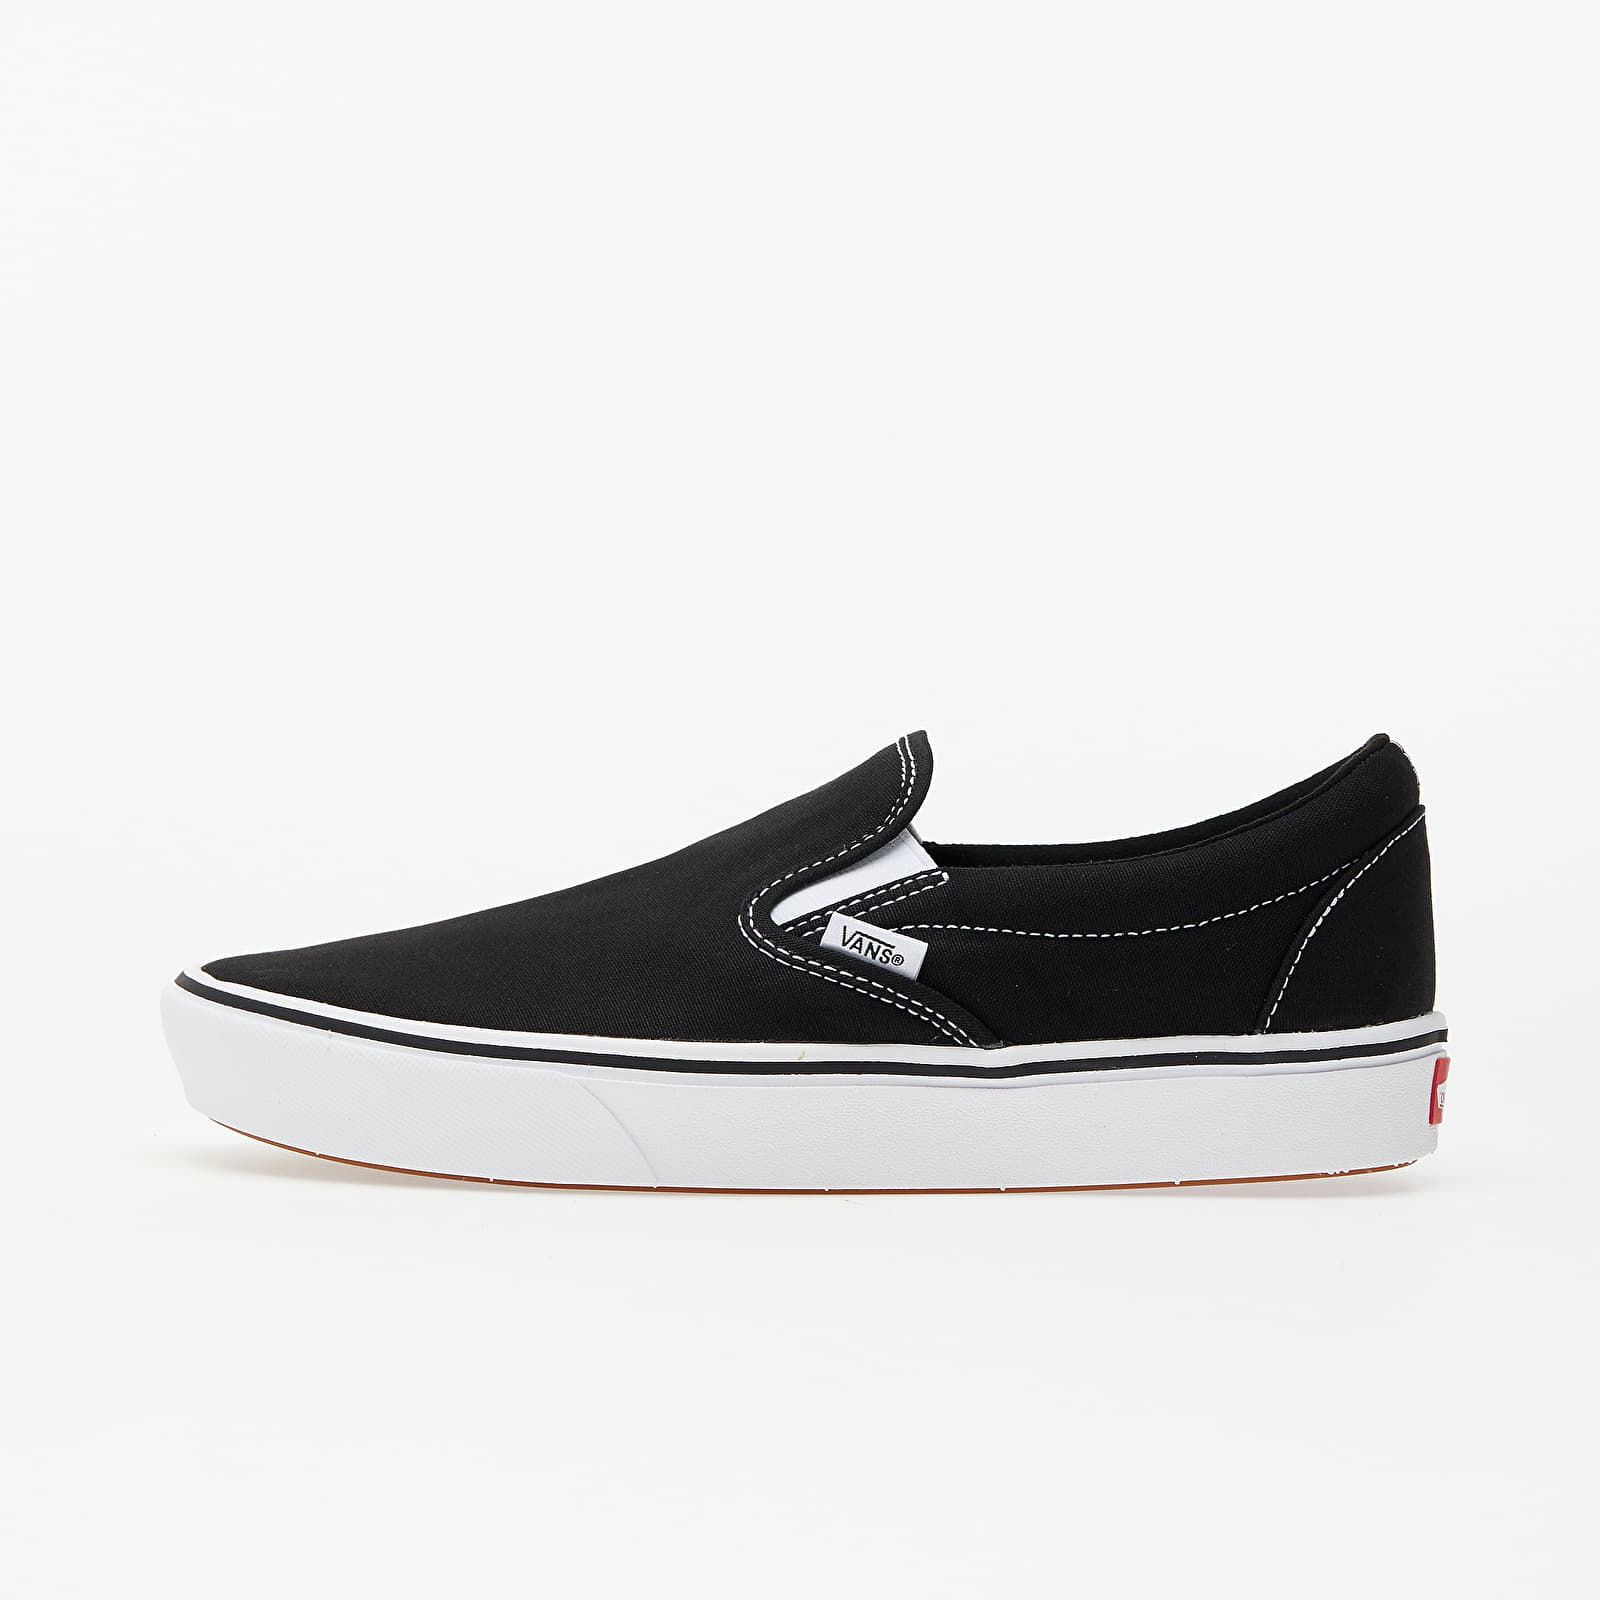 Ανδρικά παπούτσια Vans ComfyCush Slip-On (Classic) Black/ True White